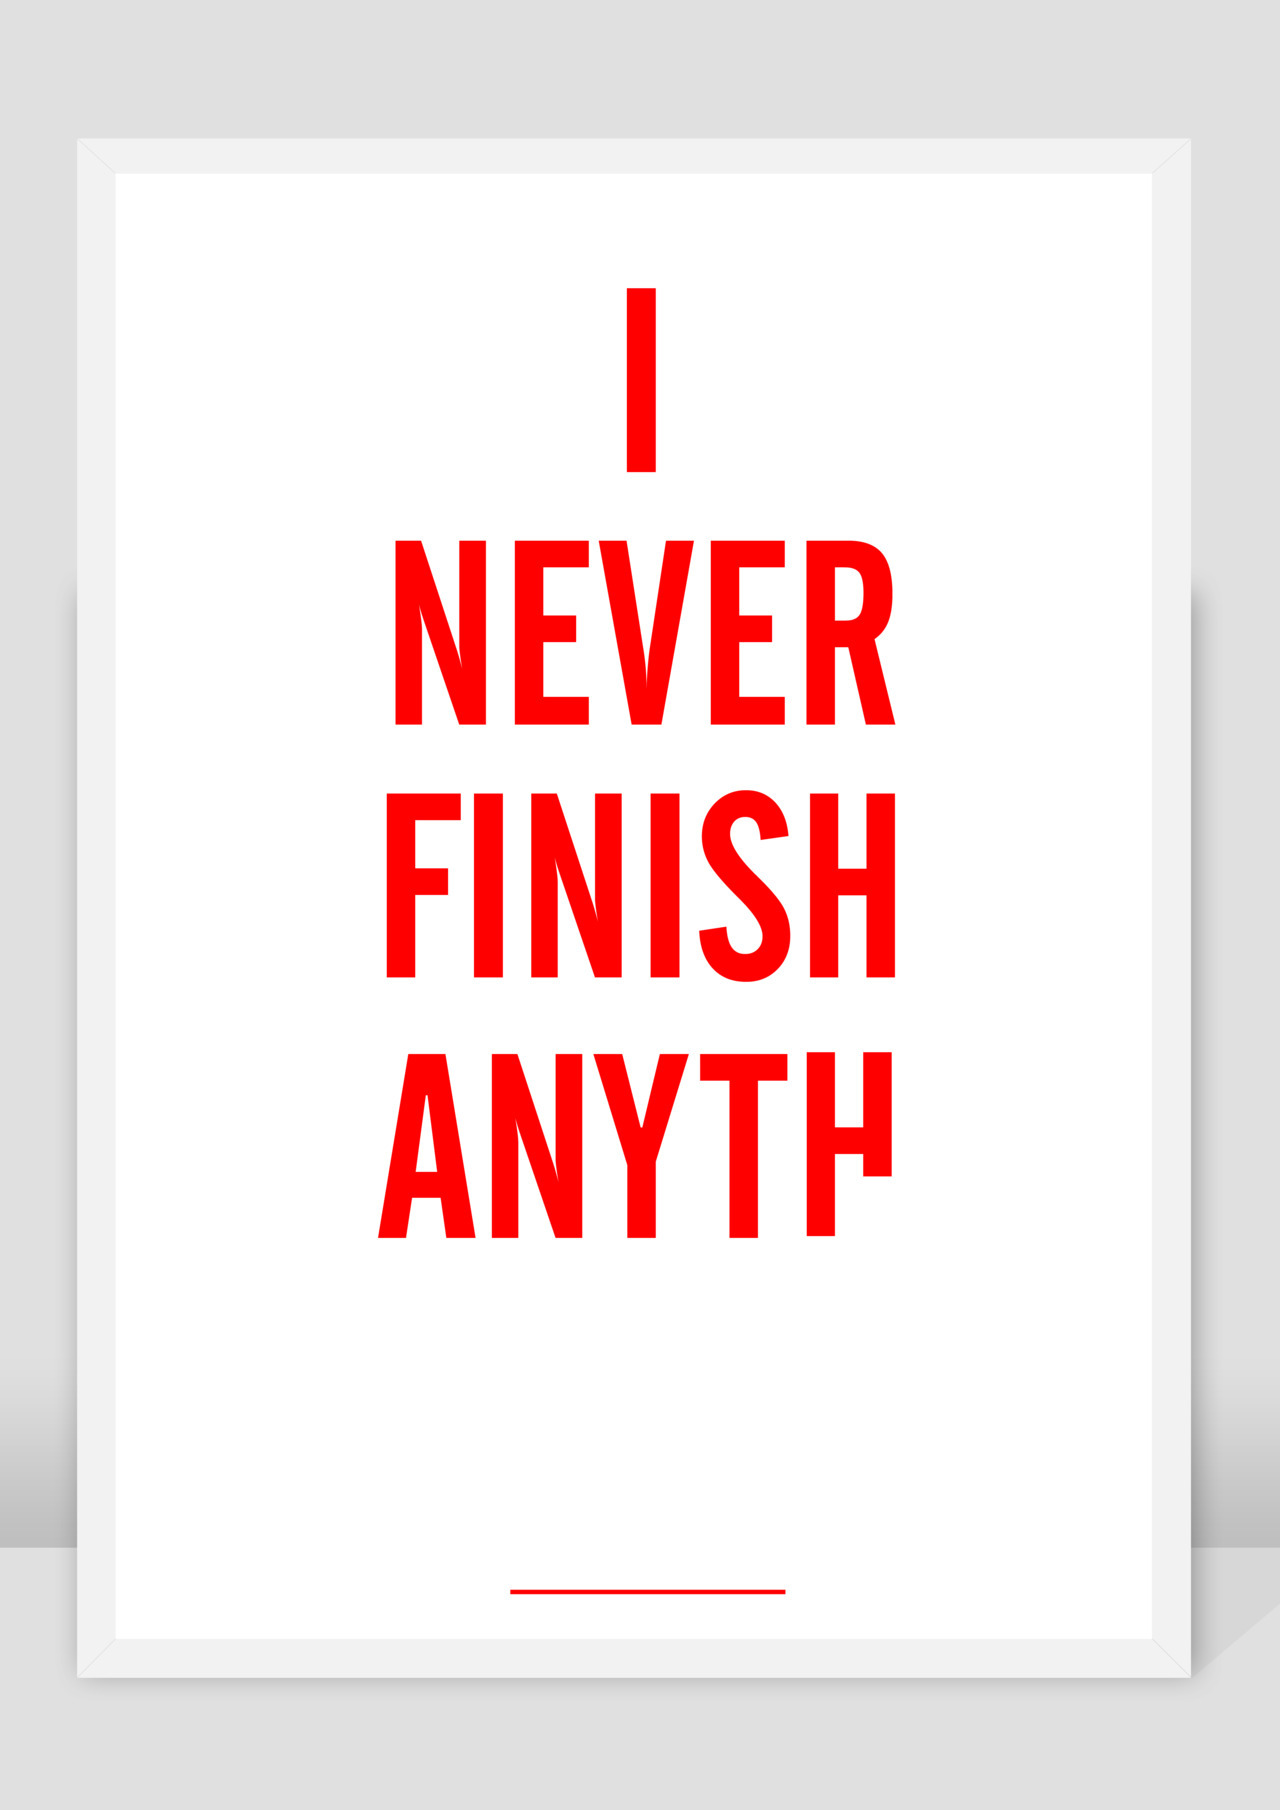 designcloud:  I NEVER FINISH ANYTH (2011) by Brad Rose, prints available to buy now